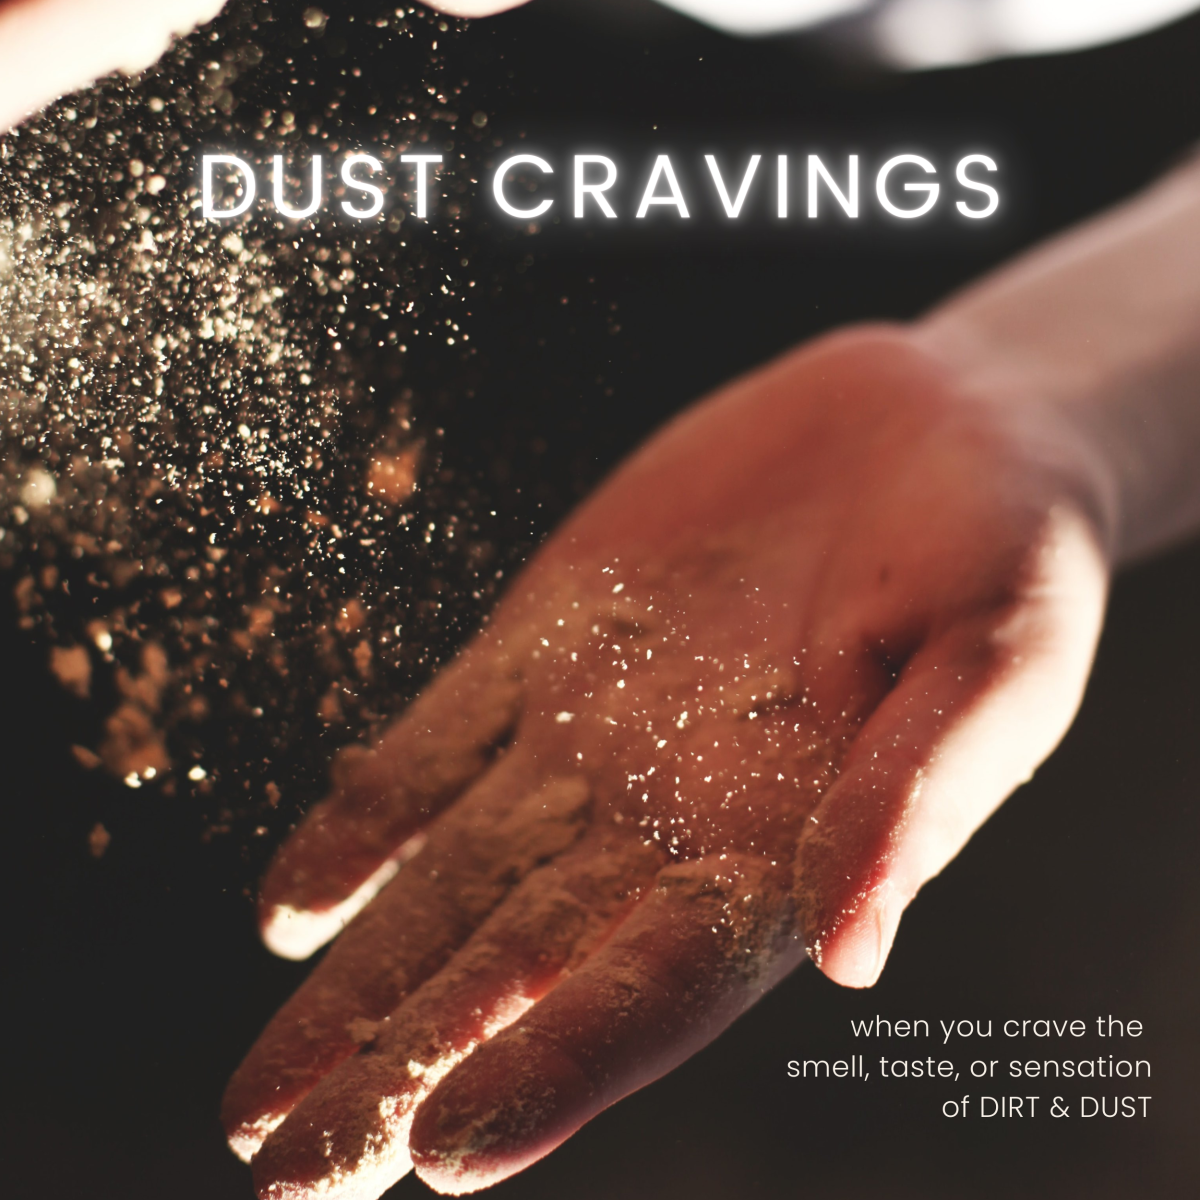 My Crazy Dust Craving During Pregnancy